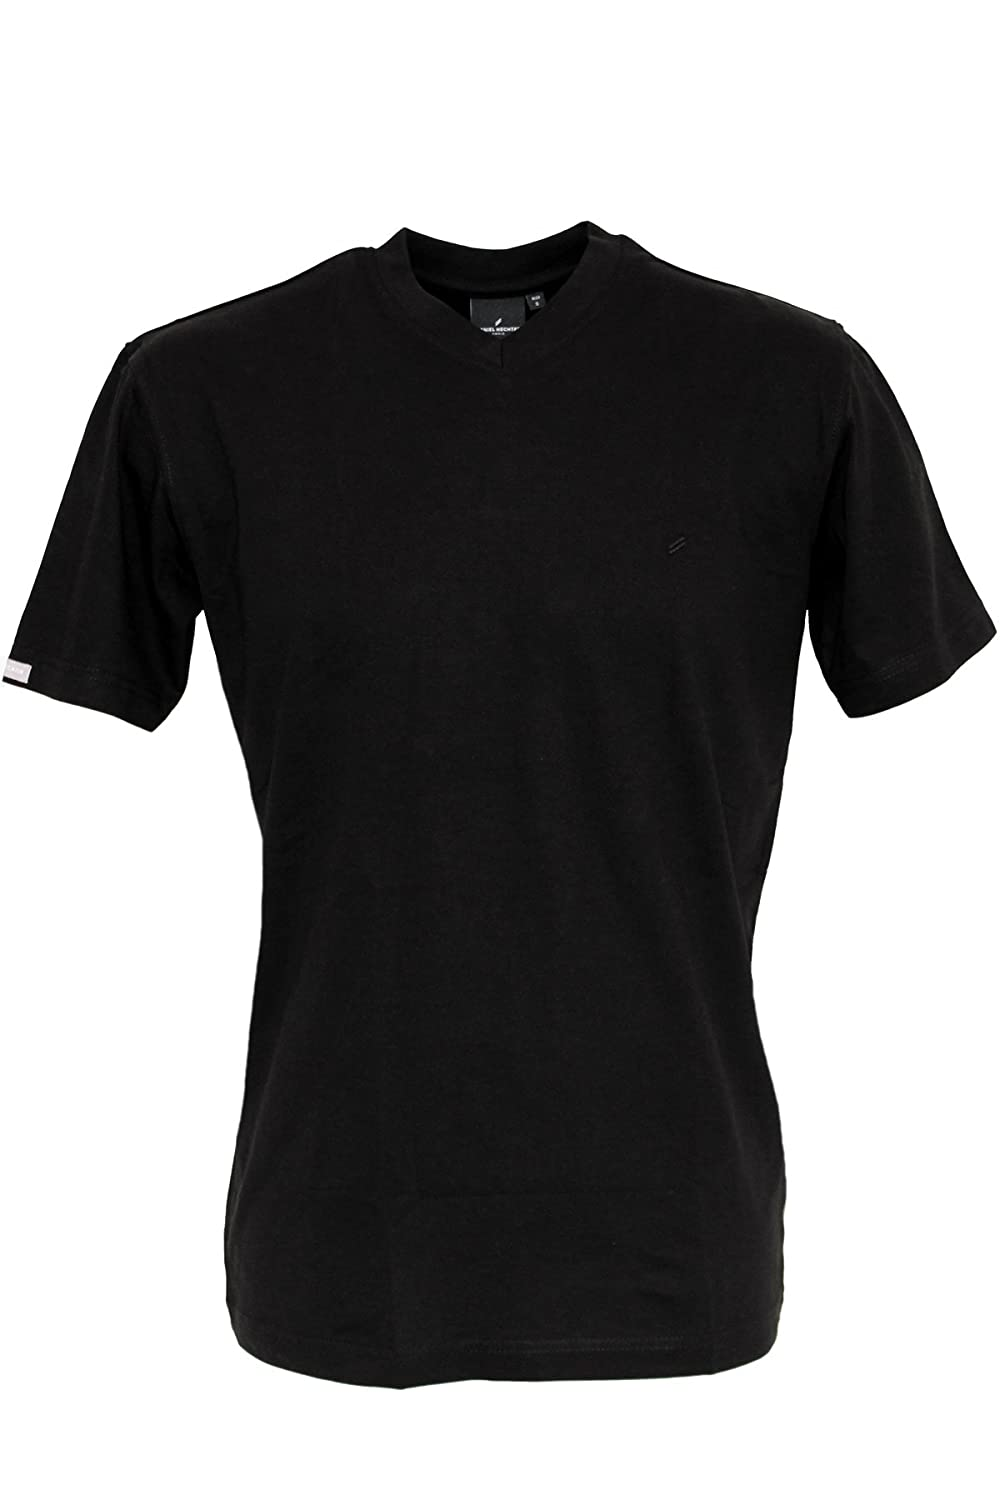 Daniel Hechter Basic V-Neck Shirt Double Pack-Black, White